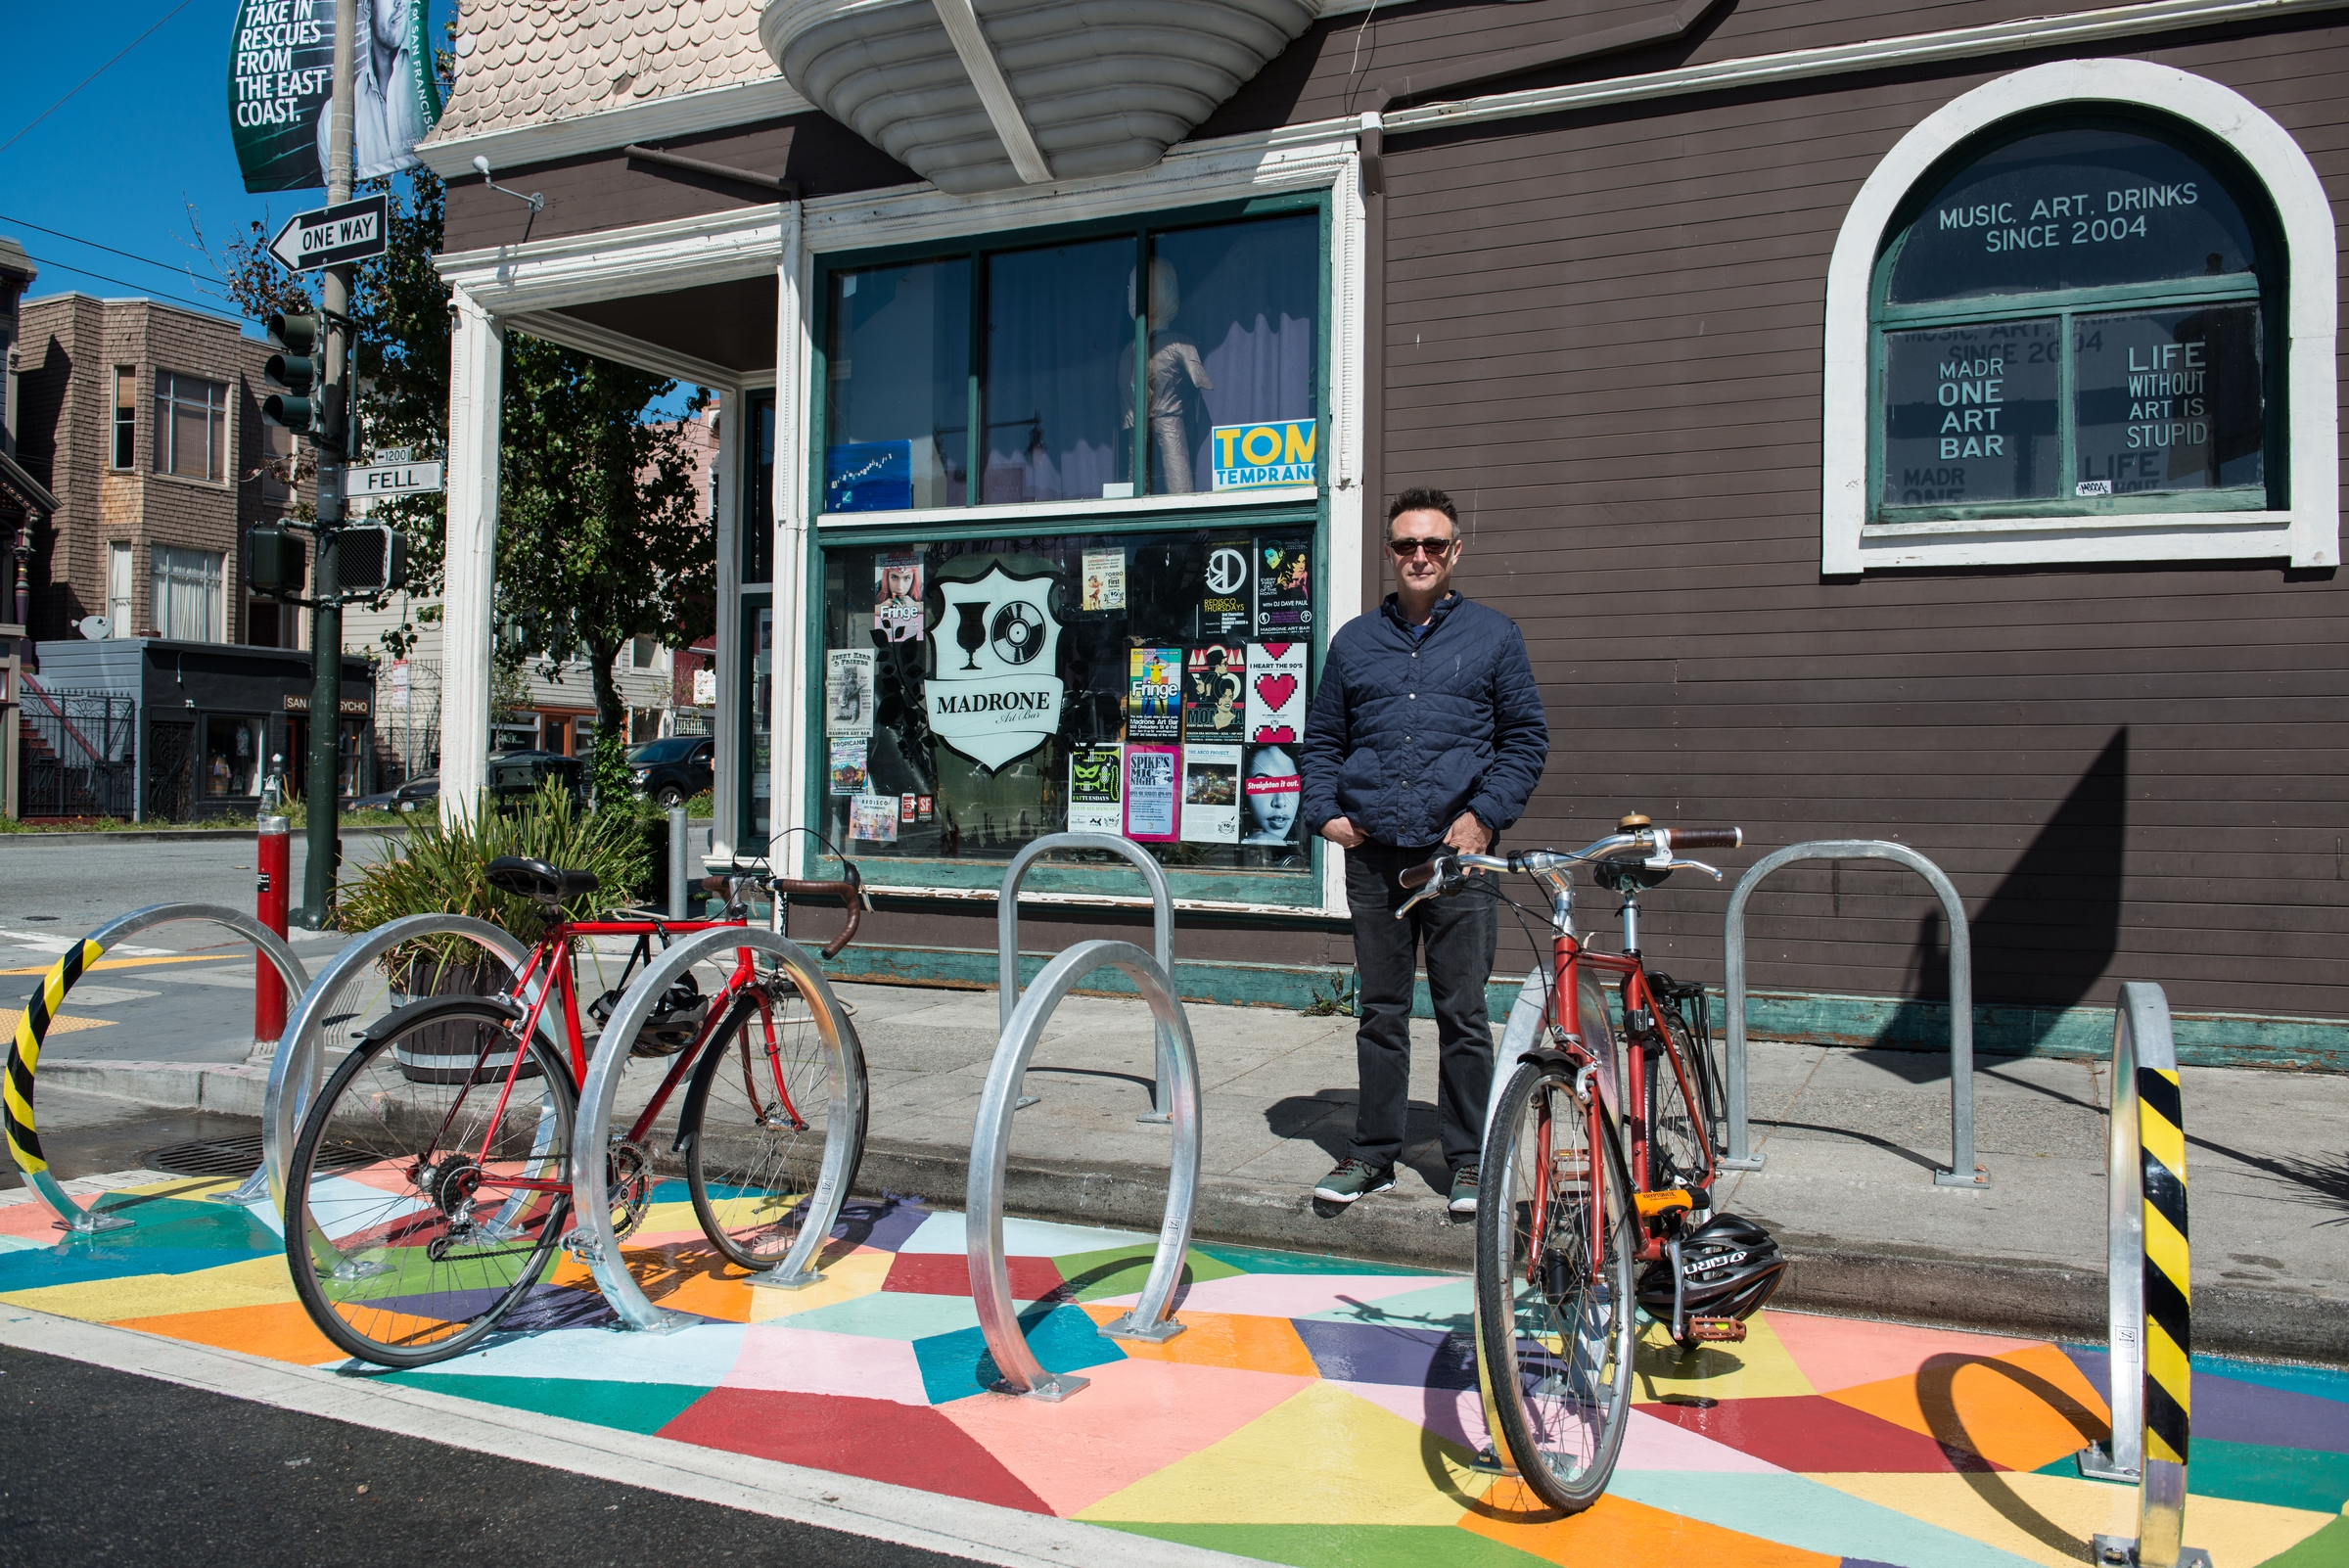 Business owner standing on sidewalk in front of newly installed mural and bike racks during the day